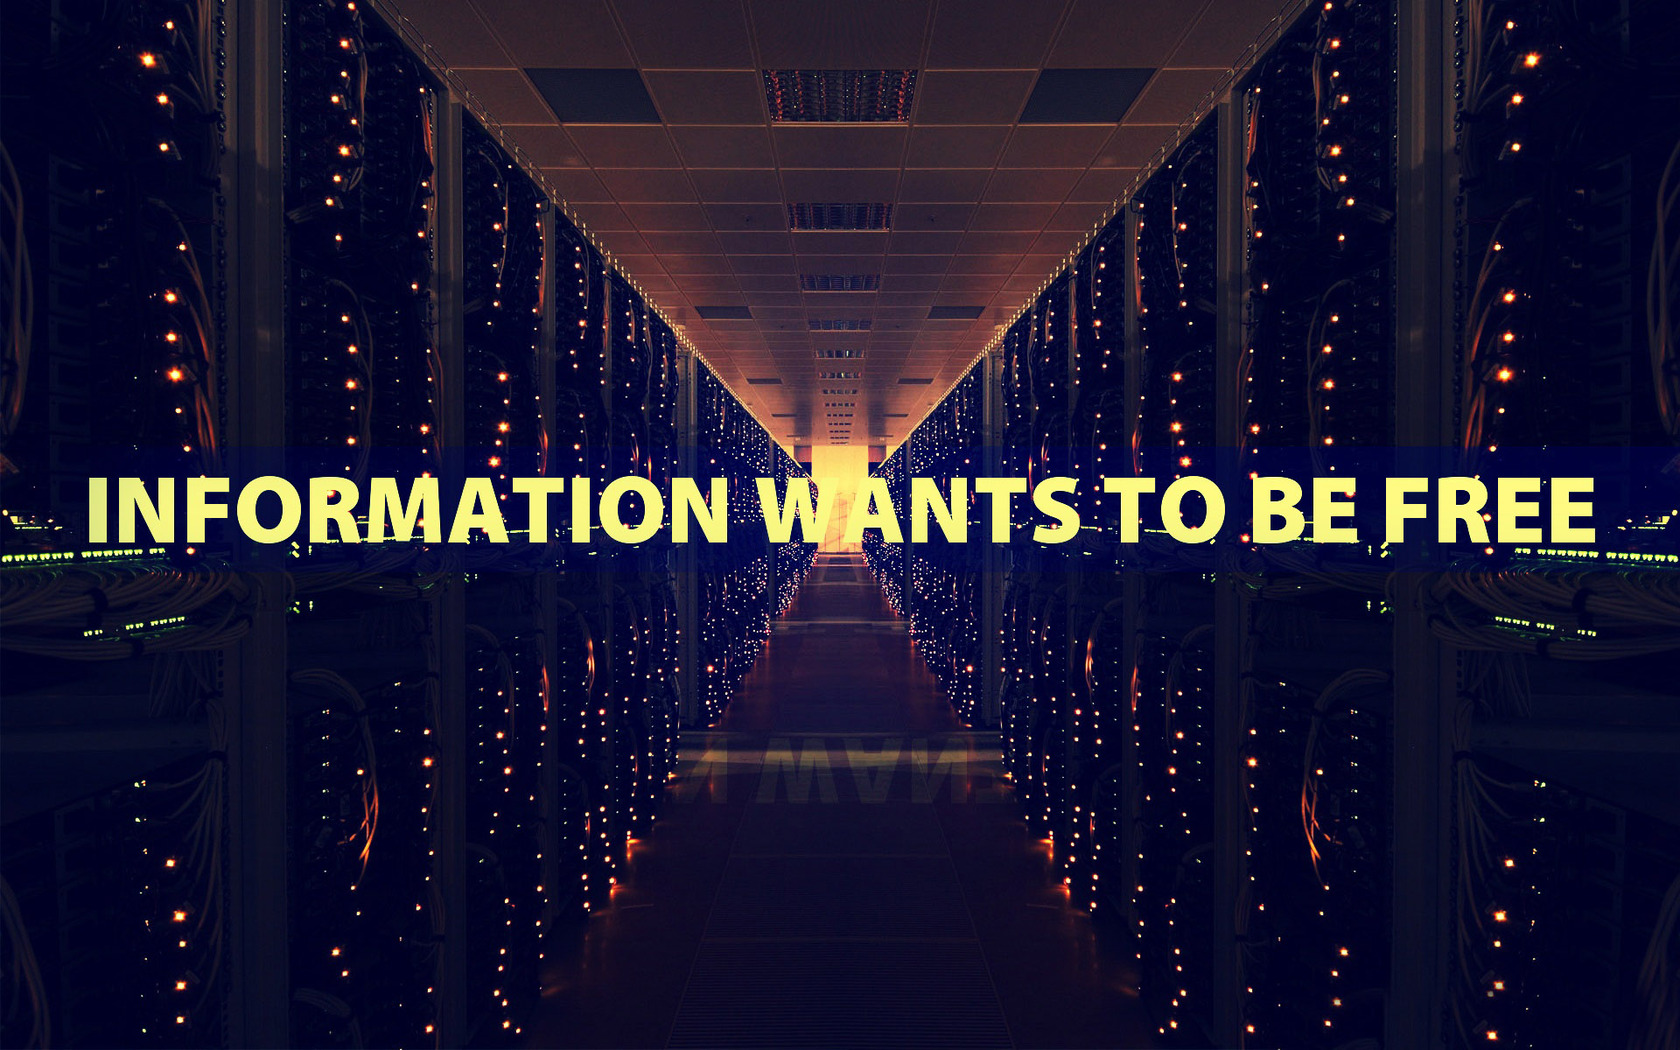 Download Information wants to be wallpaper 1680x1050